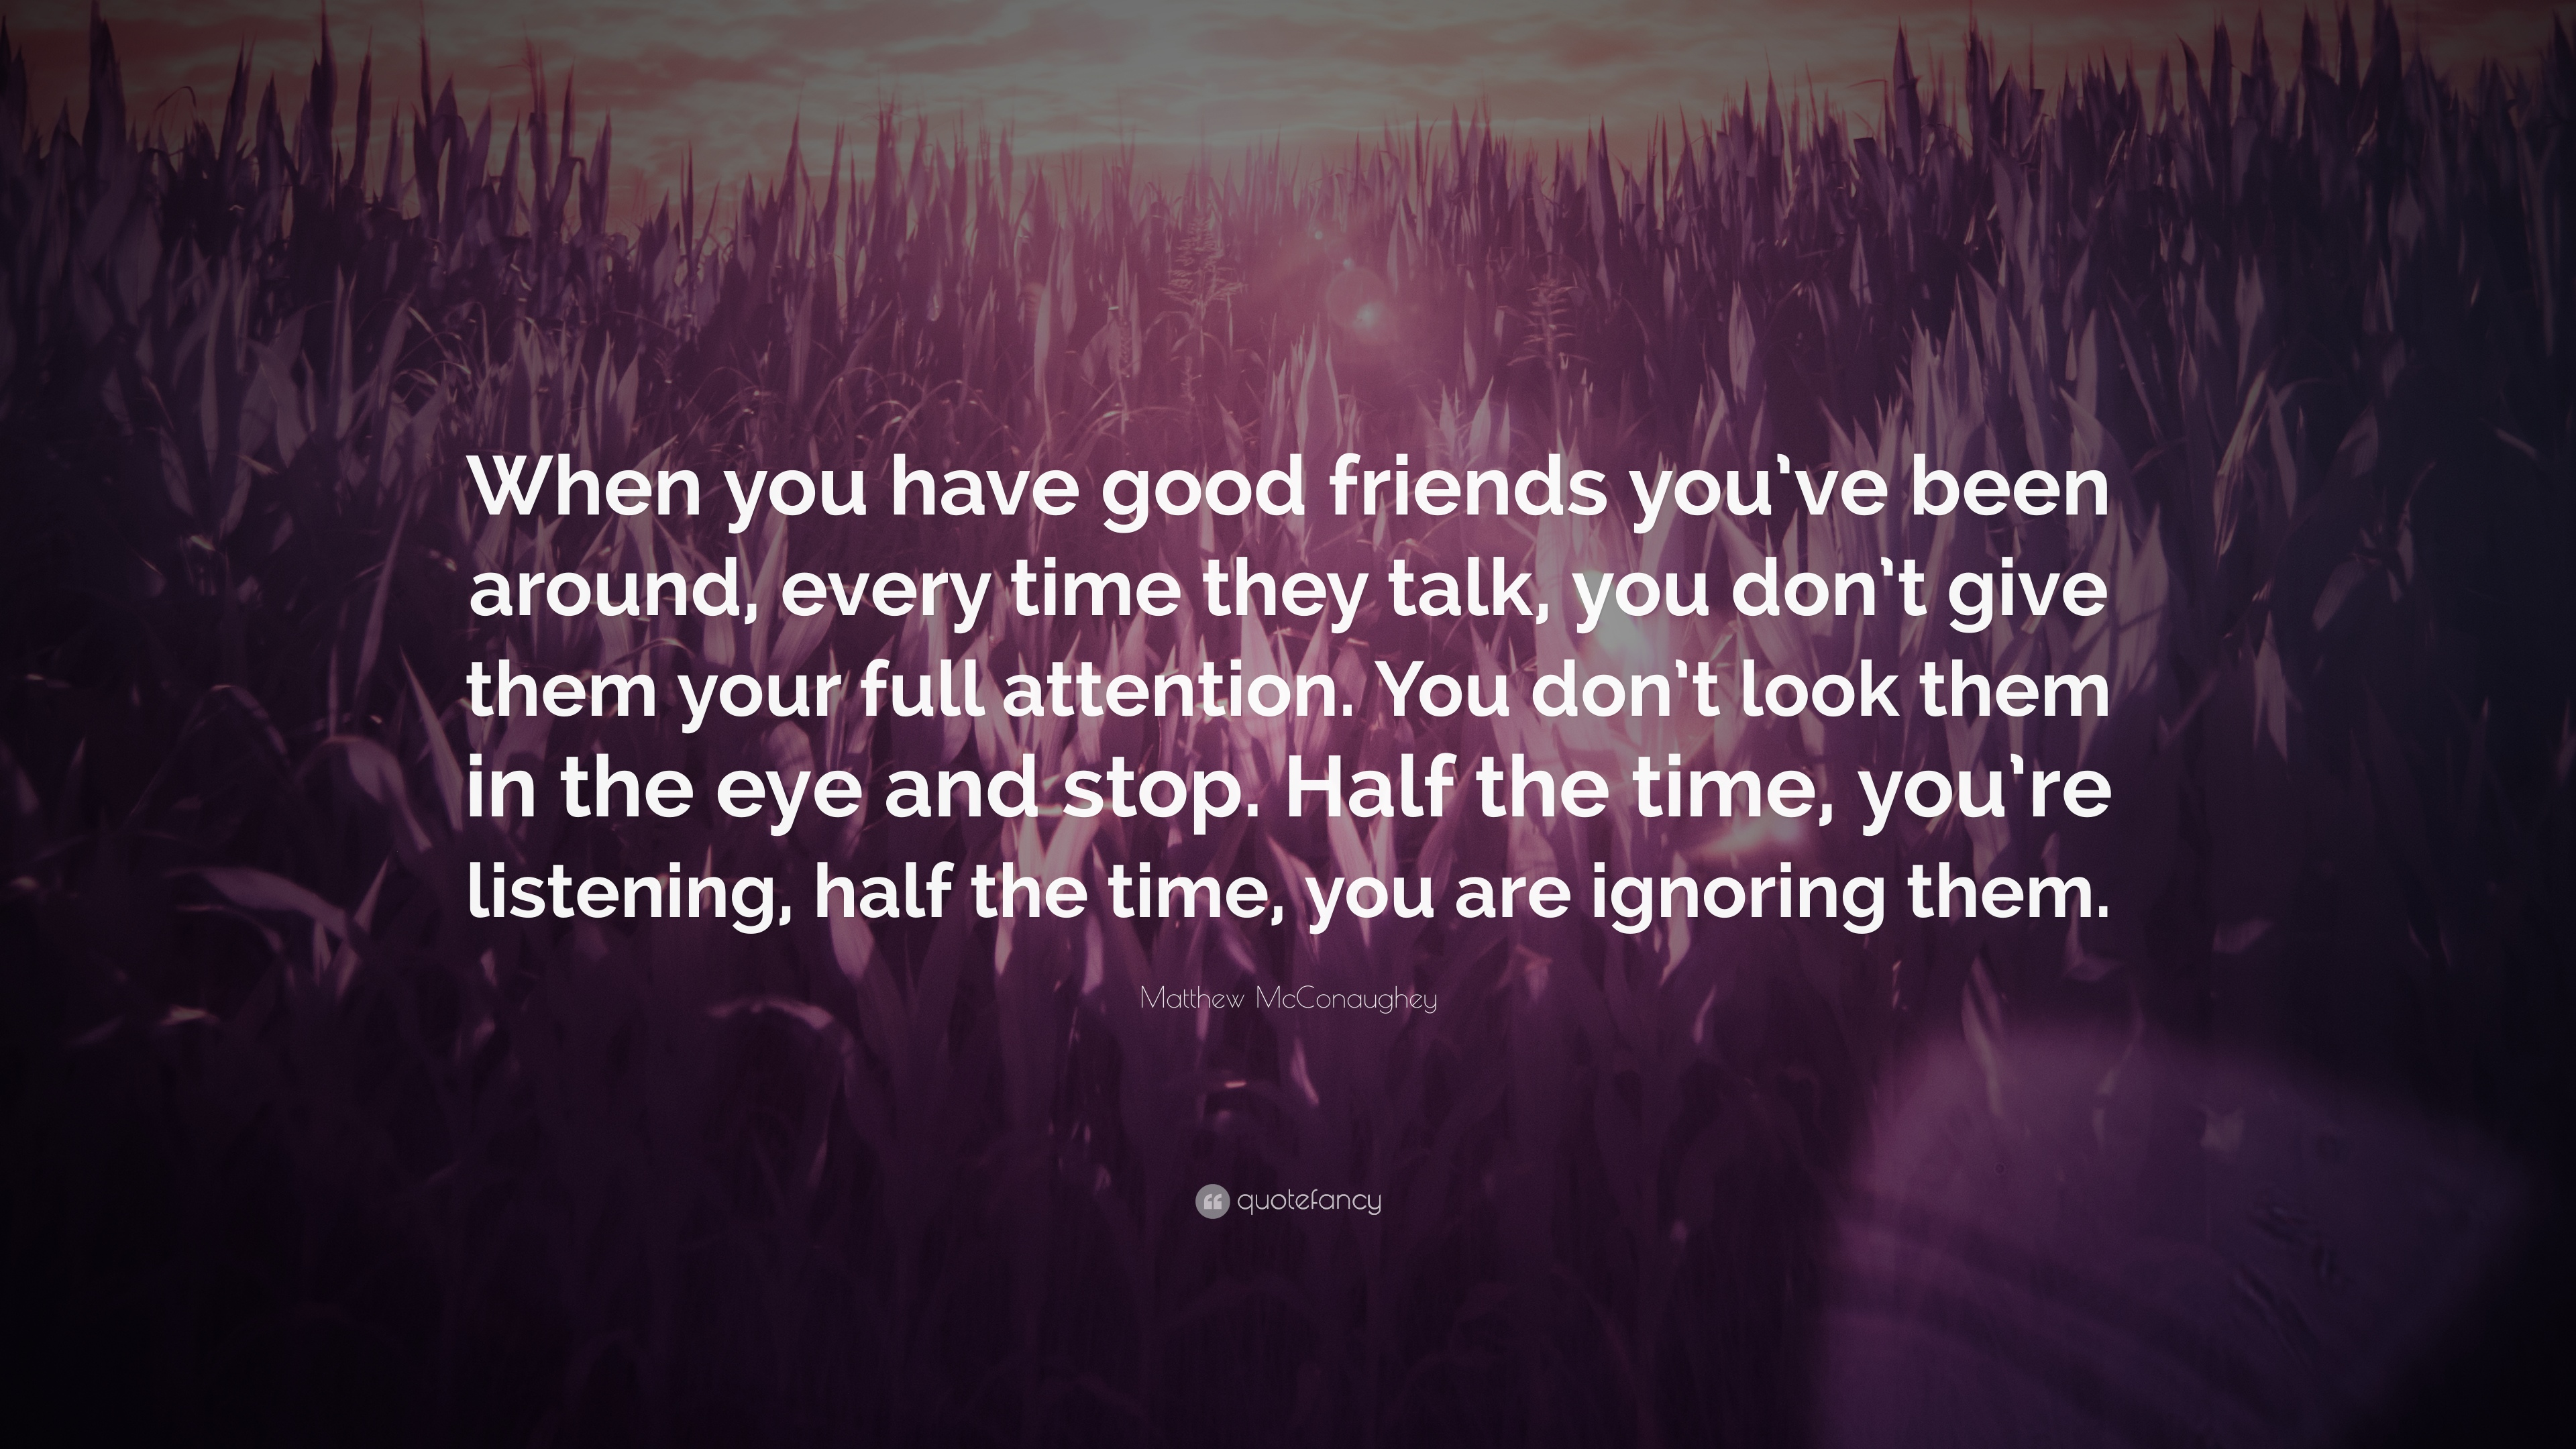 Image of: Inspirational Matthew Mcconaughey Quote when You Have Good Friends Youve Been Around Goodreads Matthew Mcconaughey Quote when You Have Good Friends Youve Been